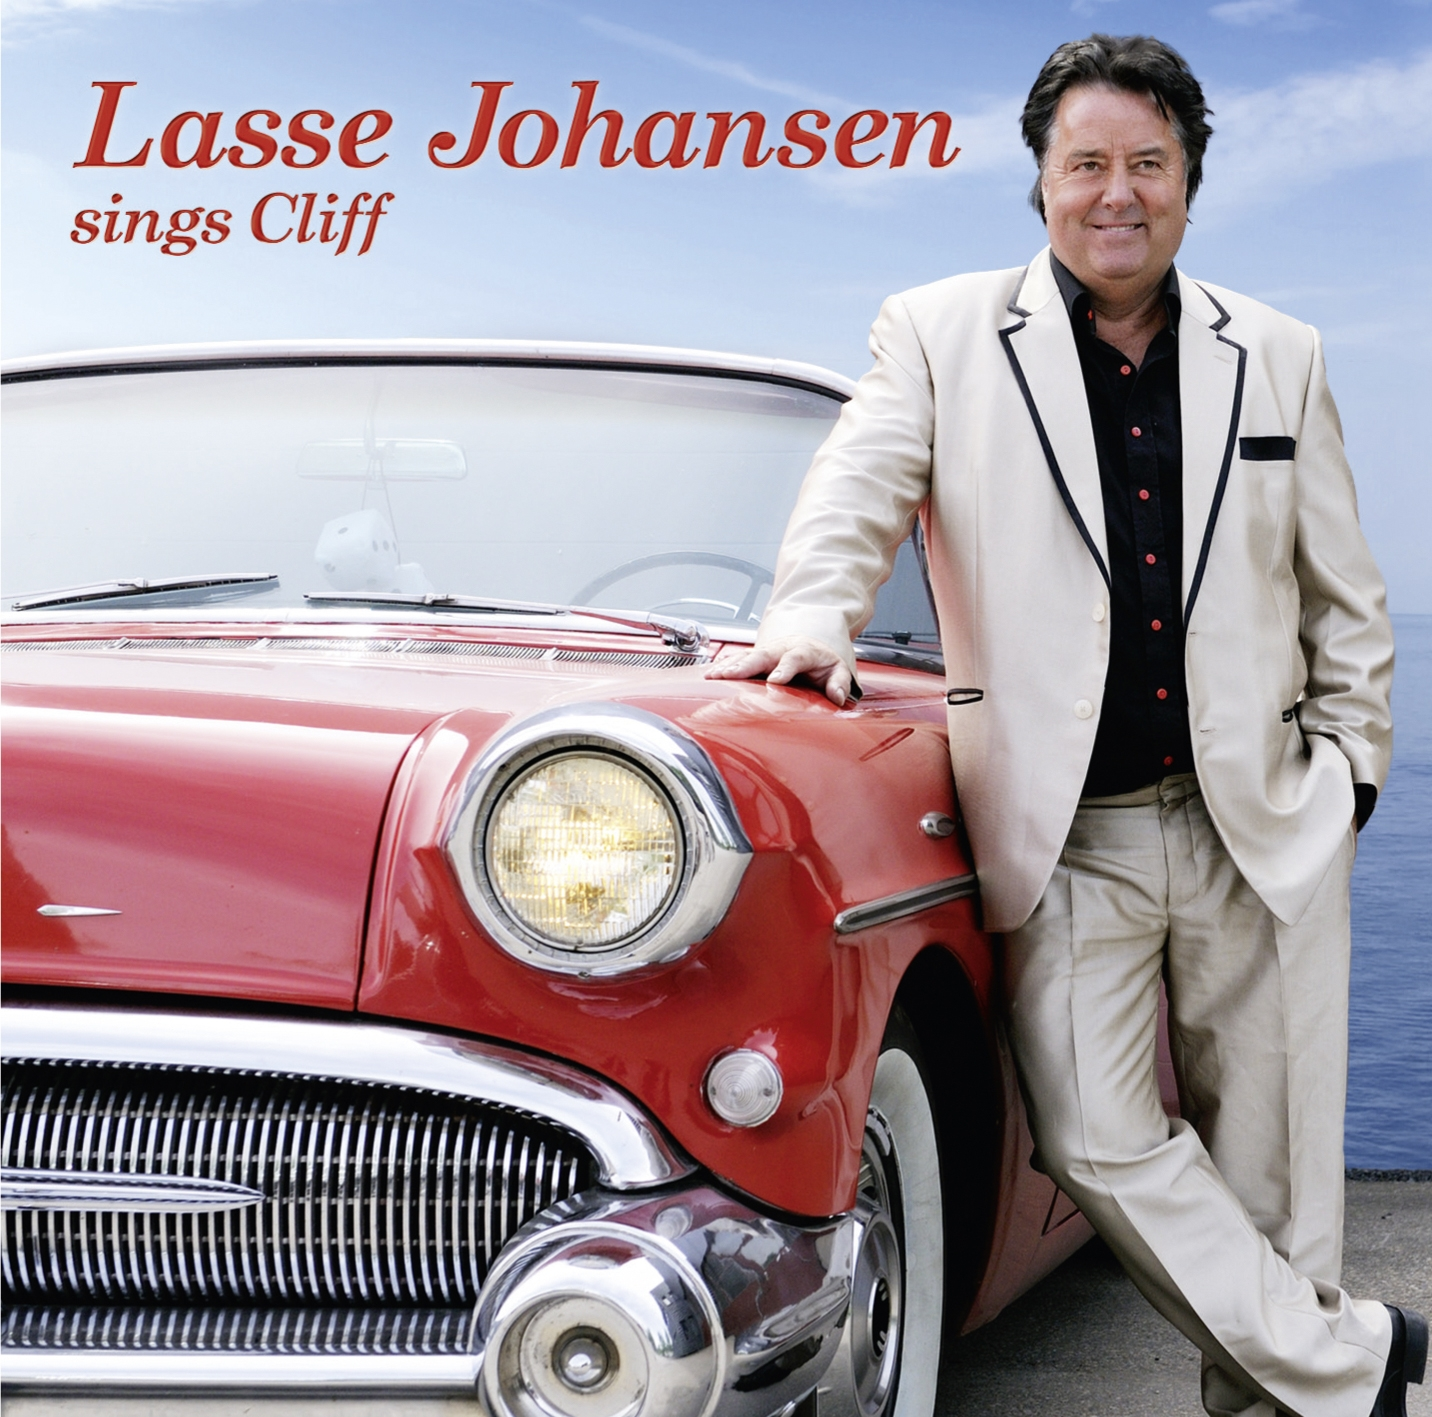 Lasse Johansen sings Cliff